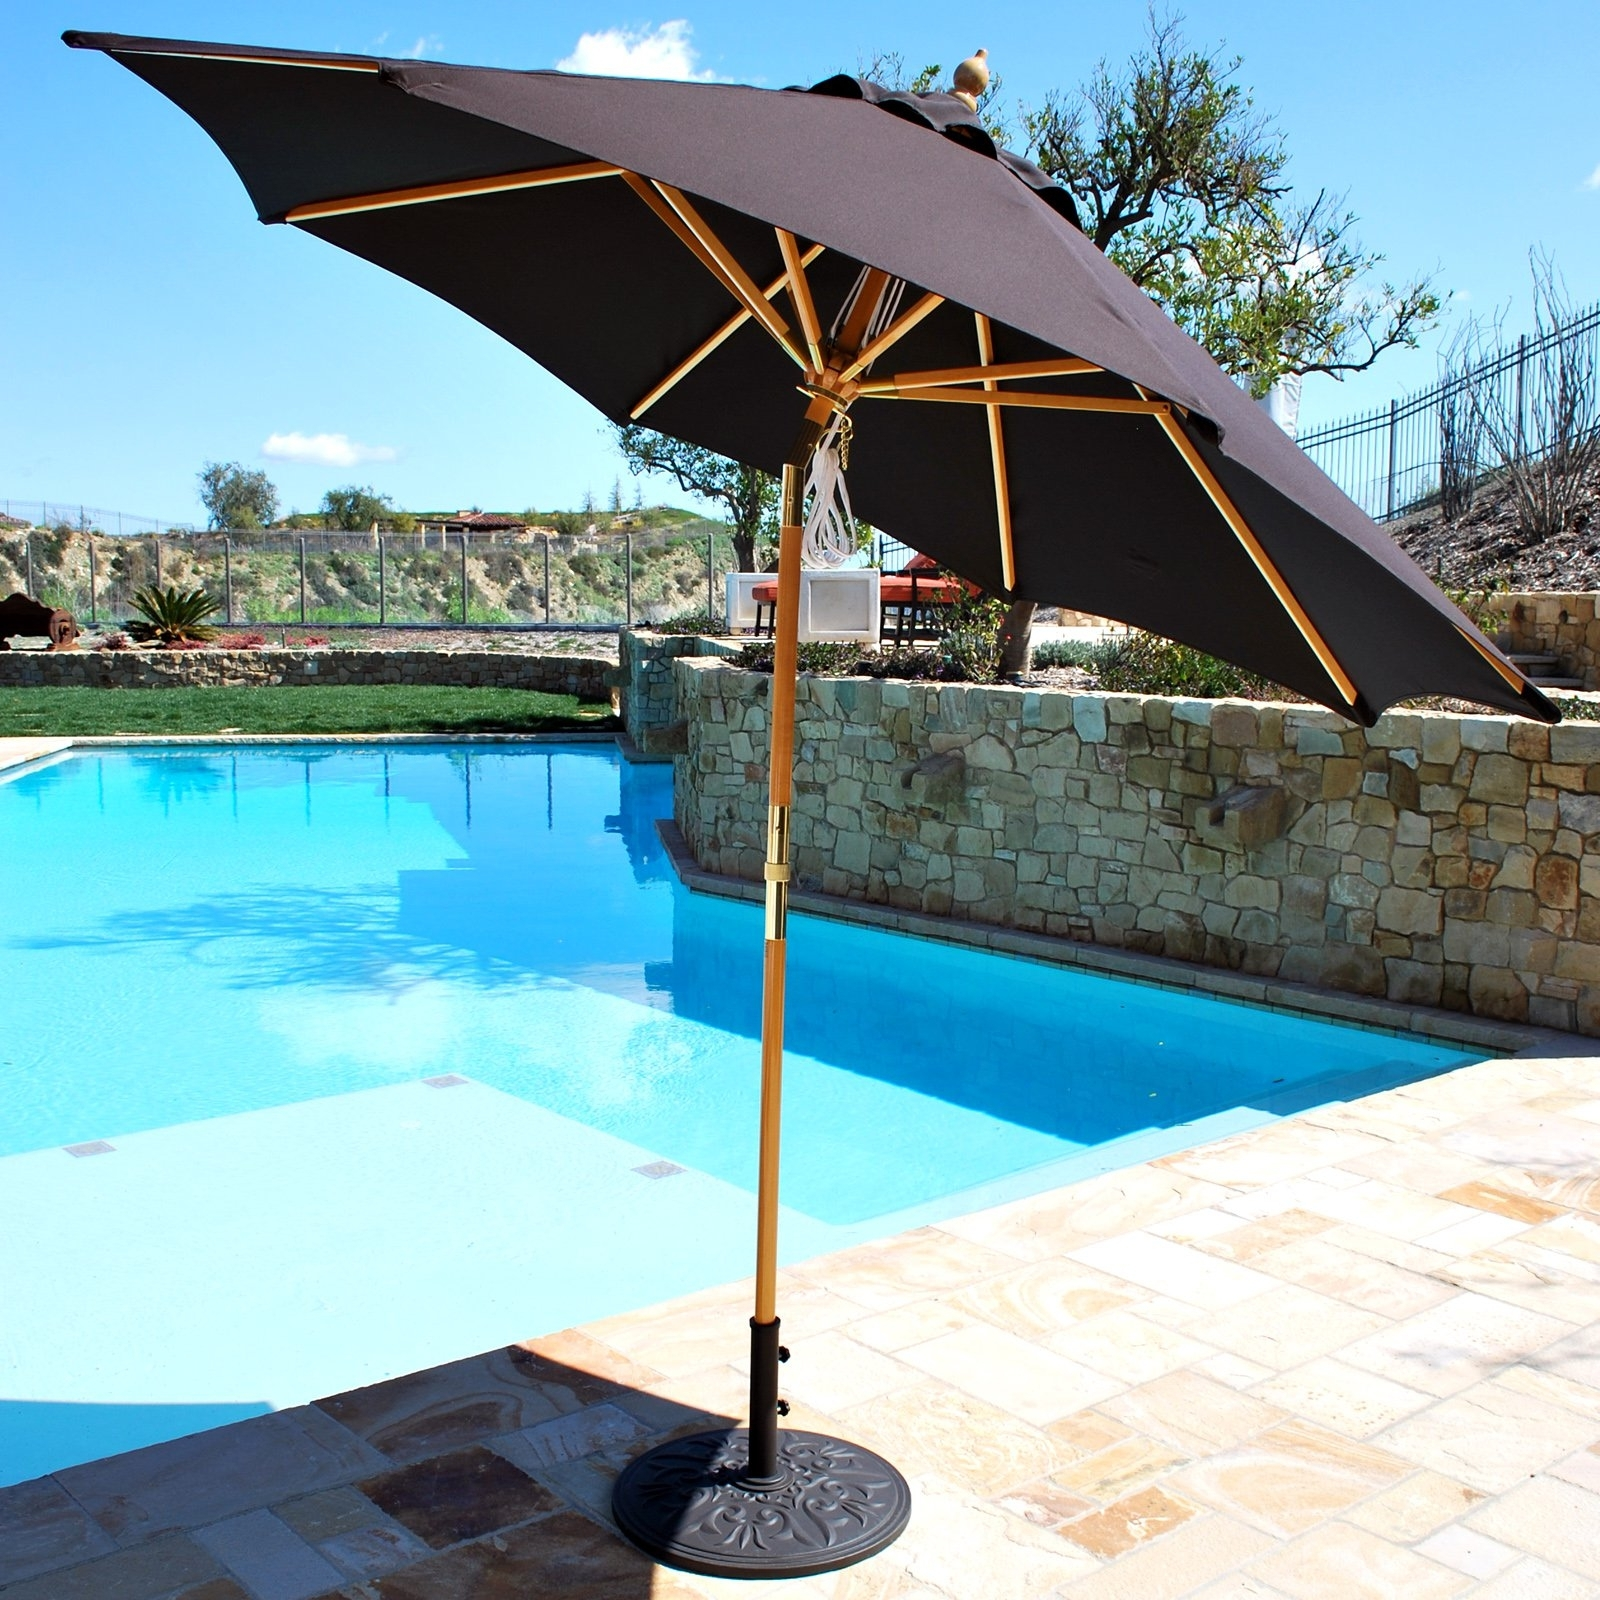 Preferred Tilting Patio Umbrellas Pertaining To Ikea Patio Umbrella Review Awesome Tilting Patio Umbrella 9T7Unk (View 9 of 20)